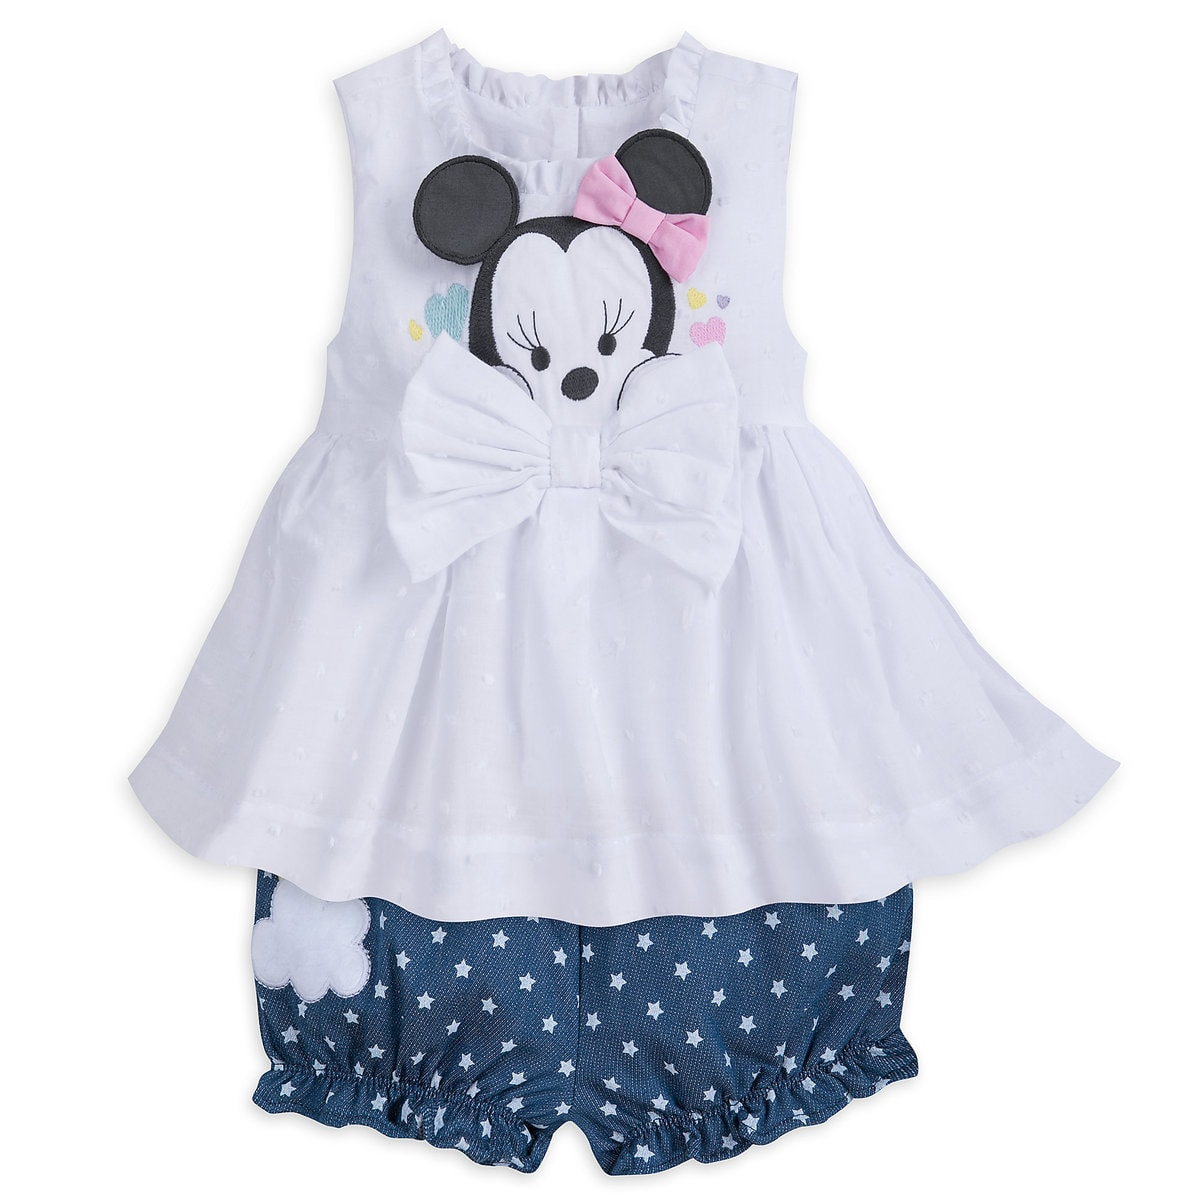 ac1ab8ab7 Product Image of Minnie Mouse Layette Bloomer Set for Baby # 1